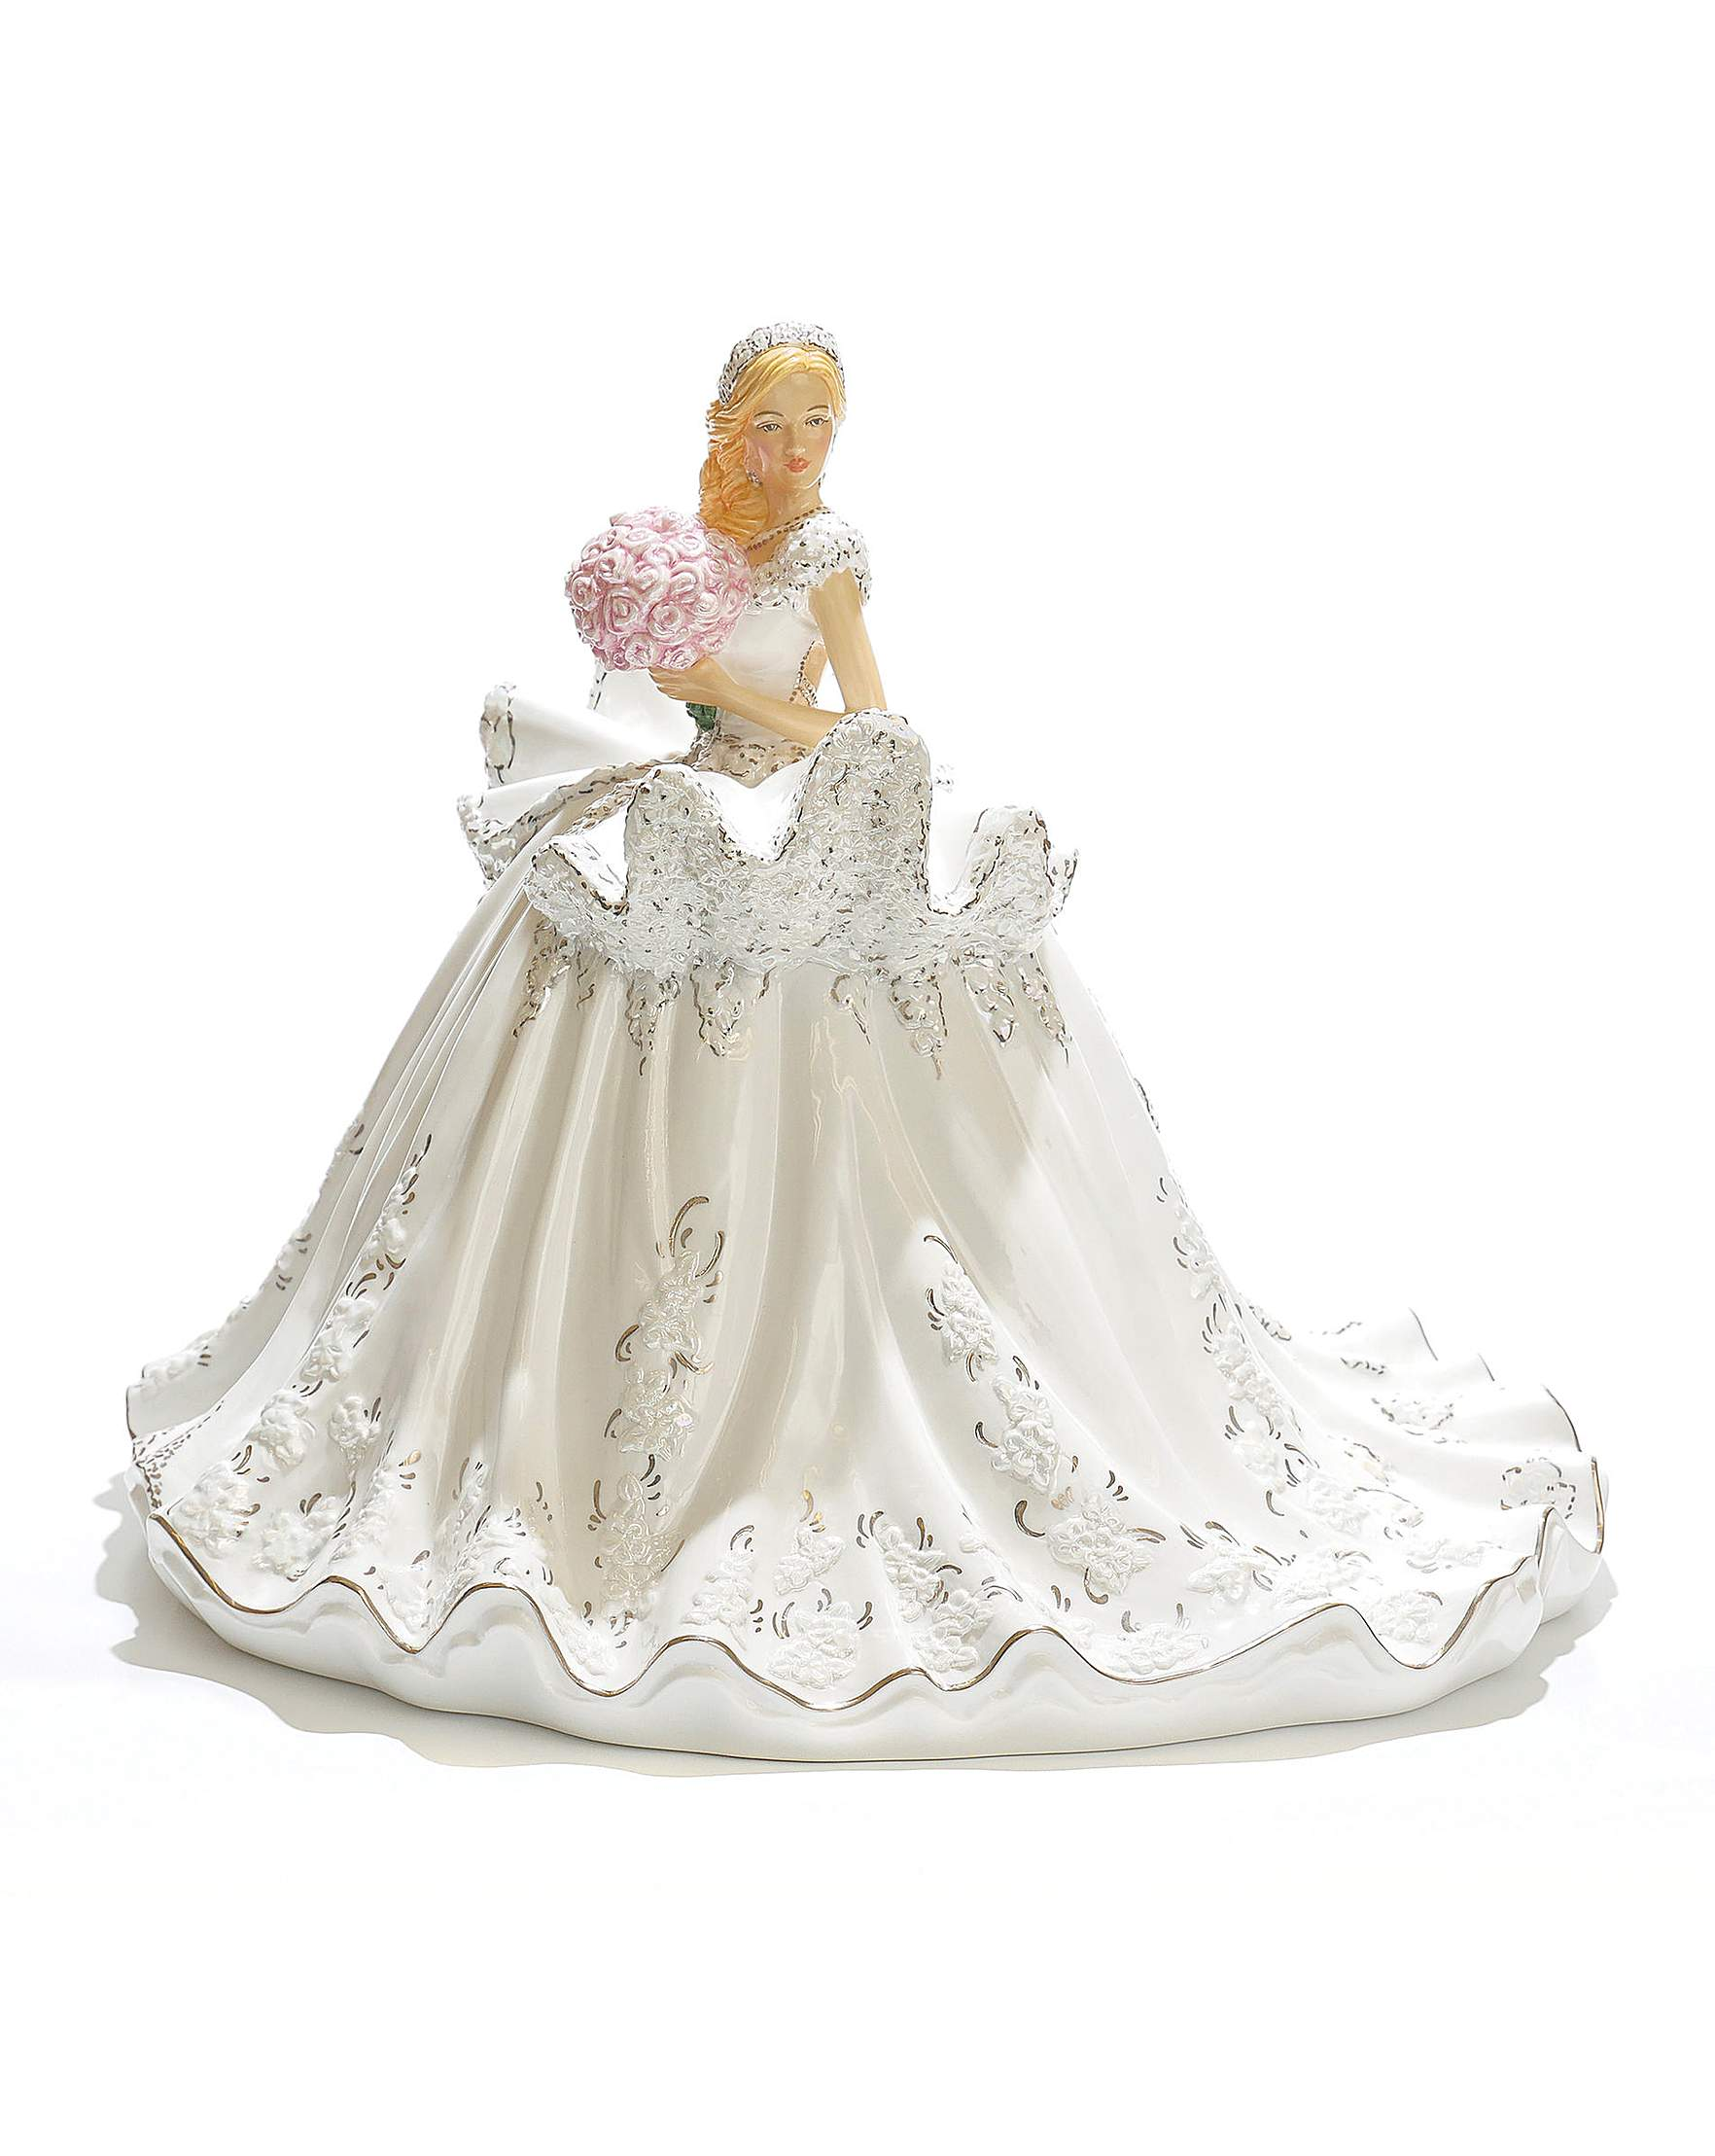 Gypsy Elegance Wedding Figurine - Blonde | J D Williams